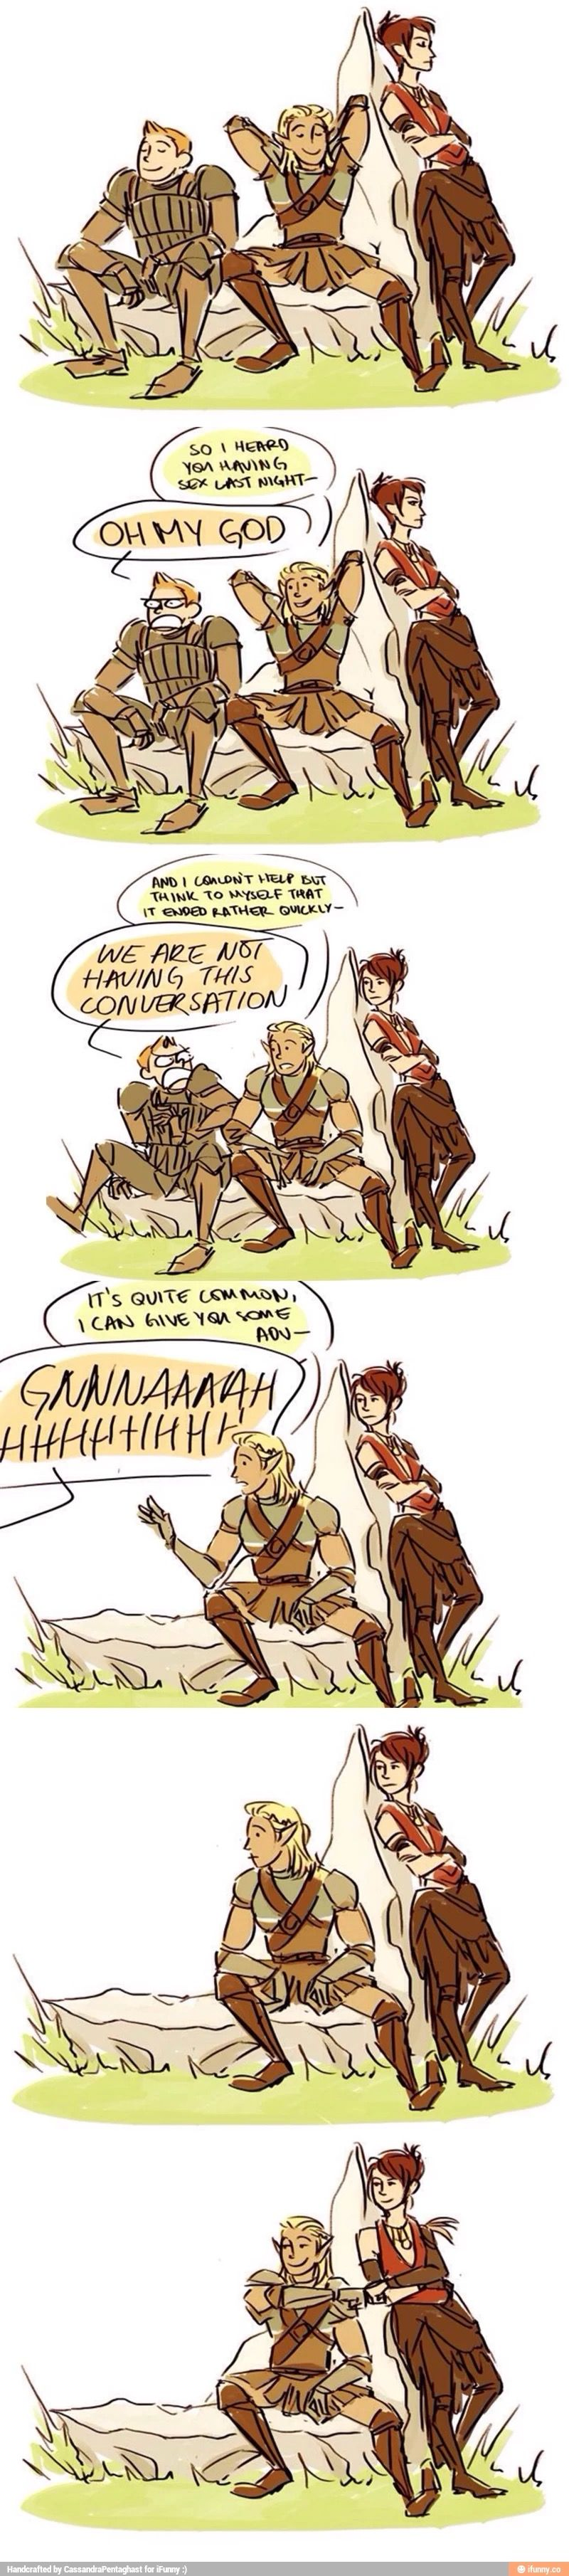 Best Party Banter Ever Dragon Age Funny Dragon Age Memes Dragon Age Comics